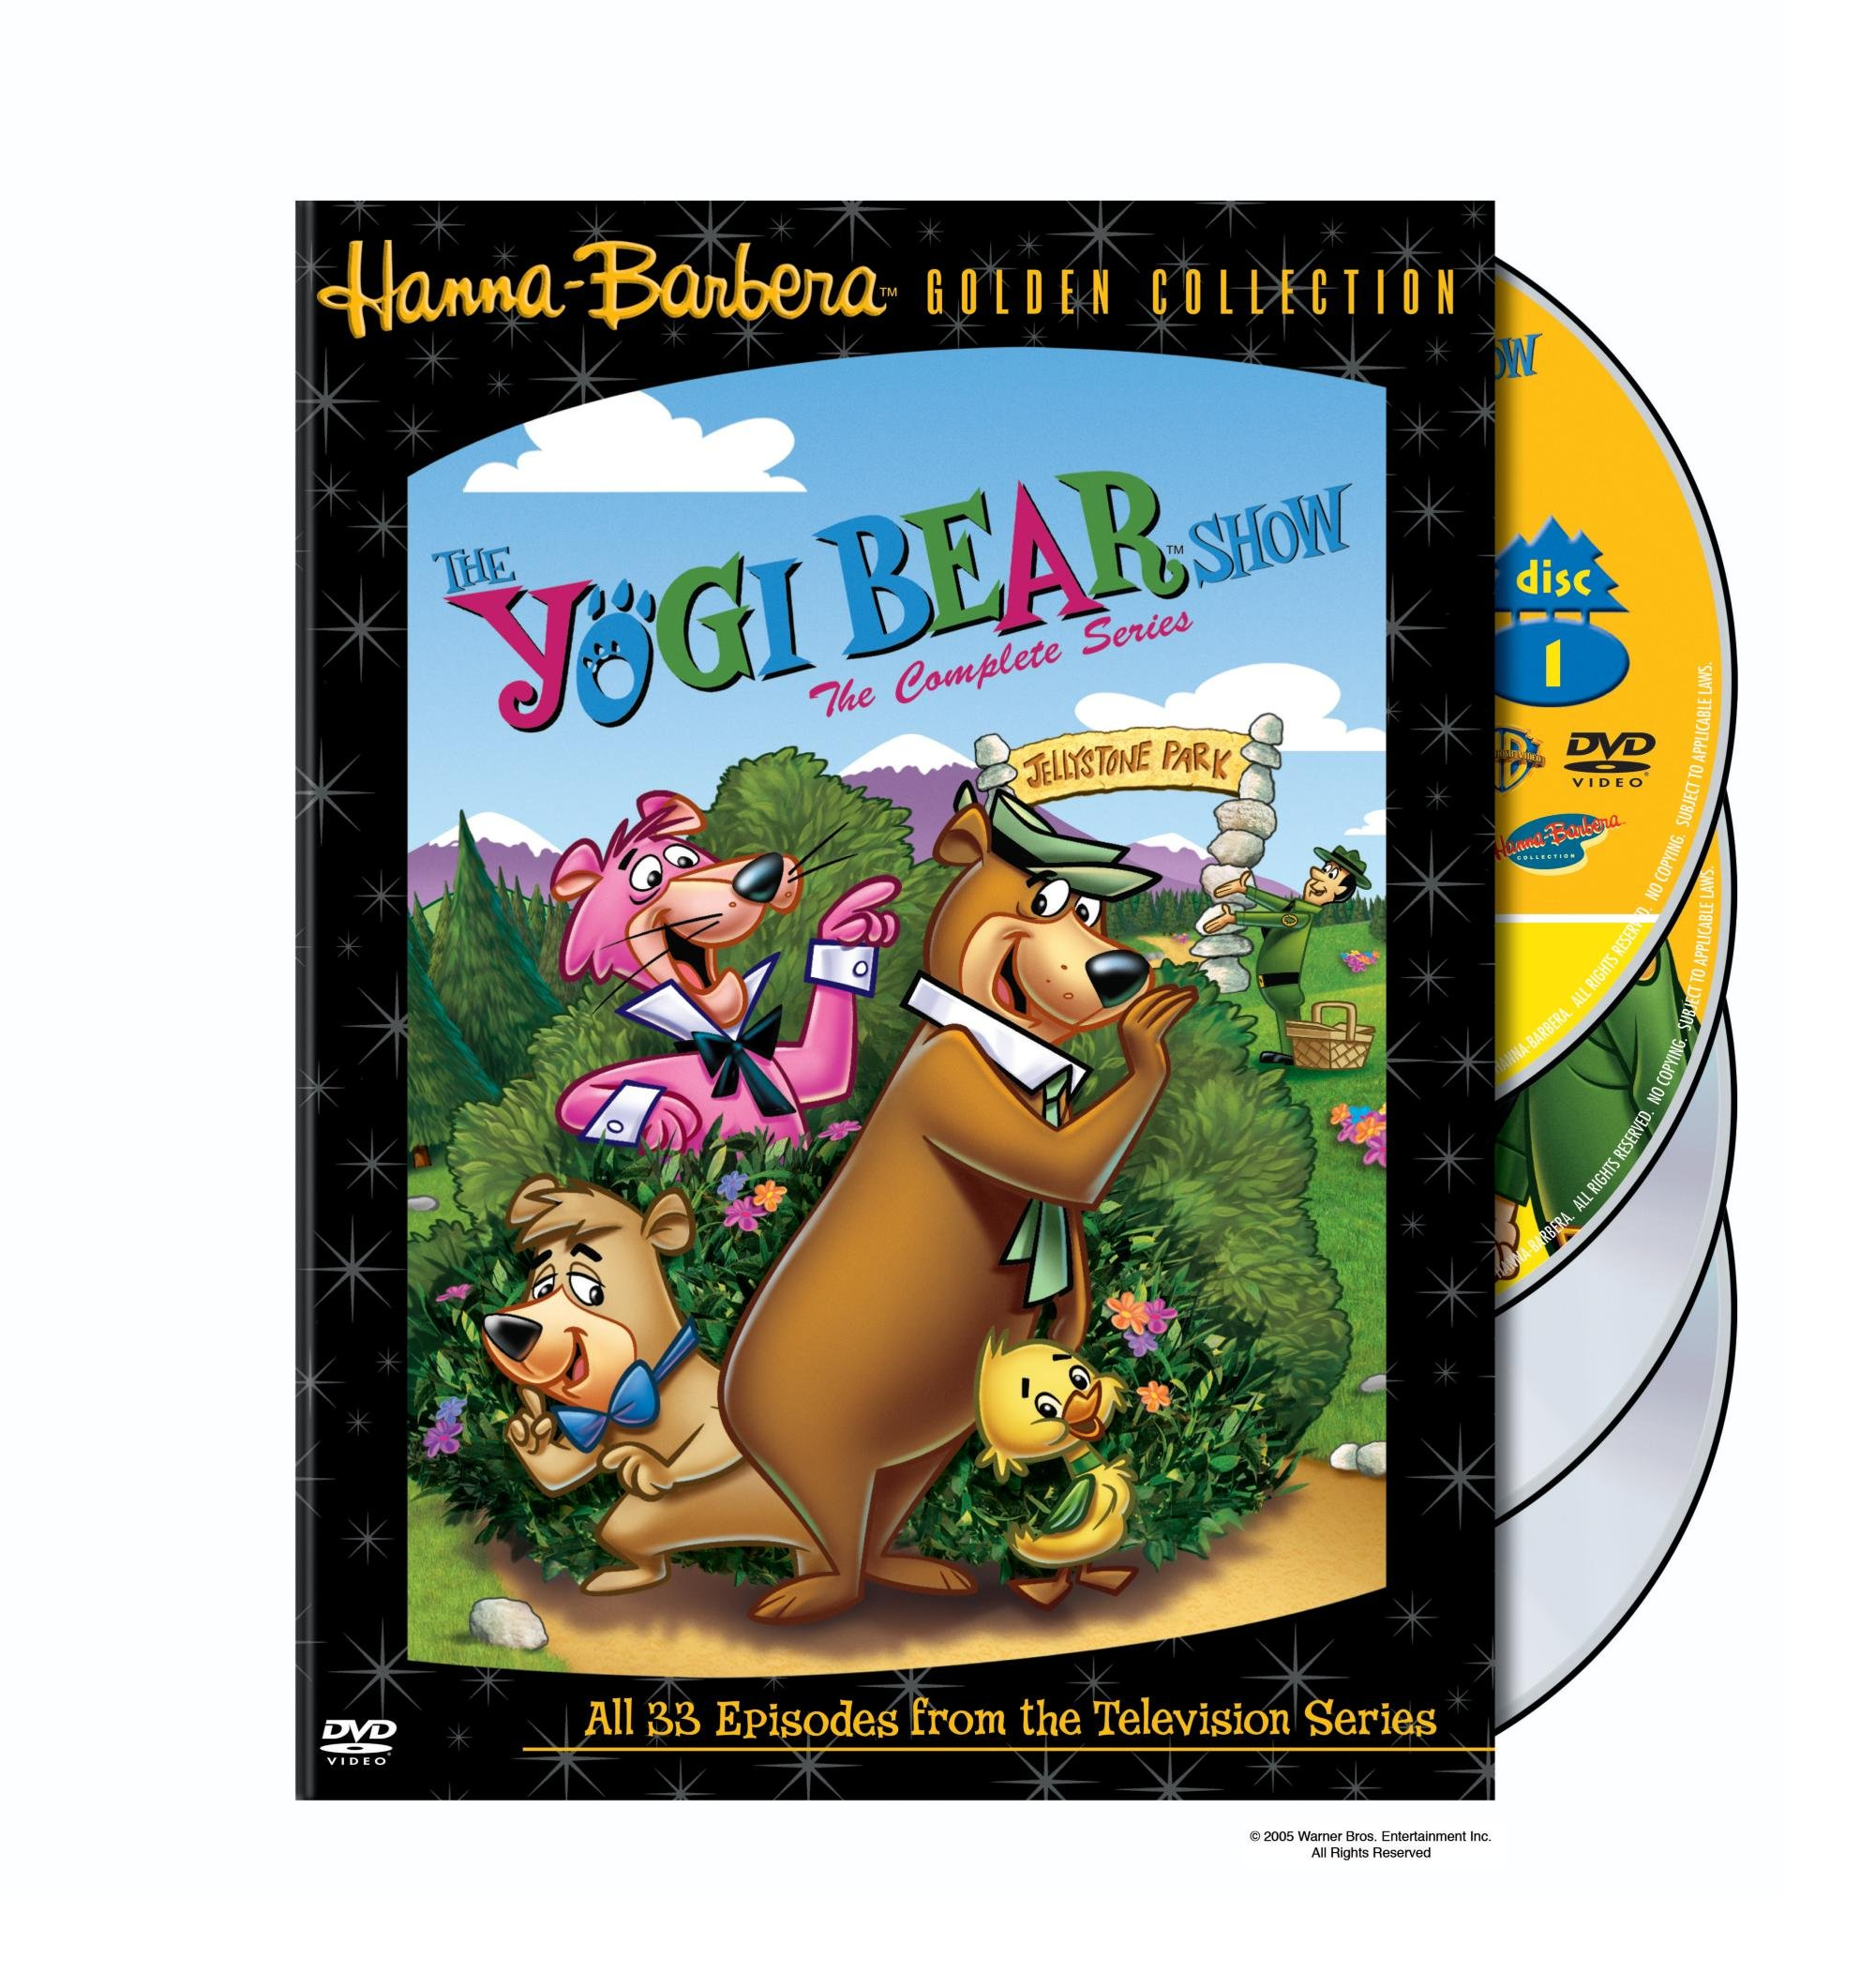 The Yogi Bear Show - The Complete Series by Hanna-Barbera